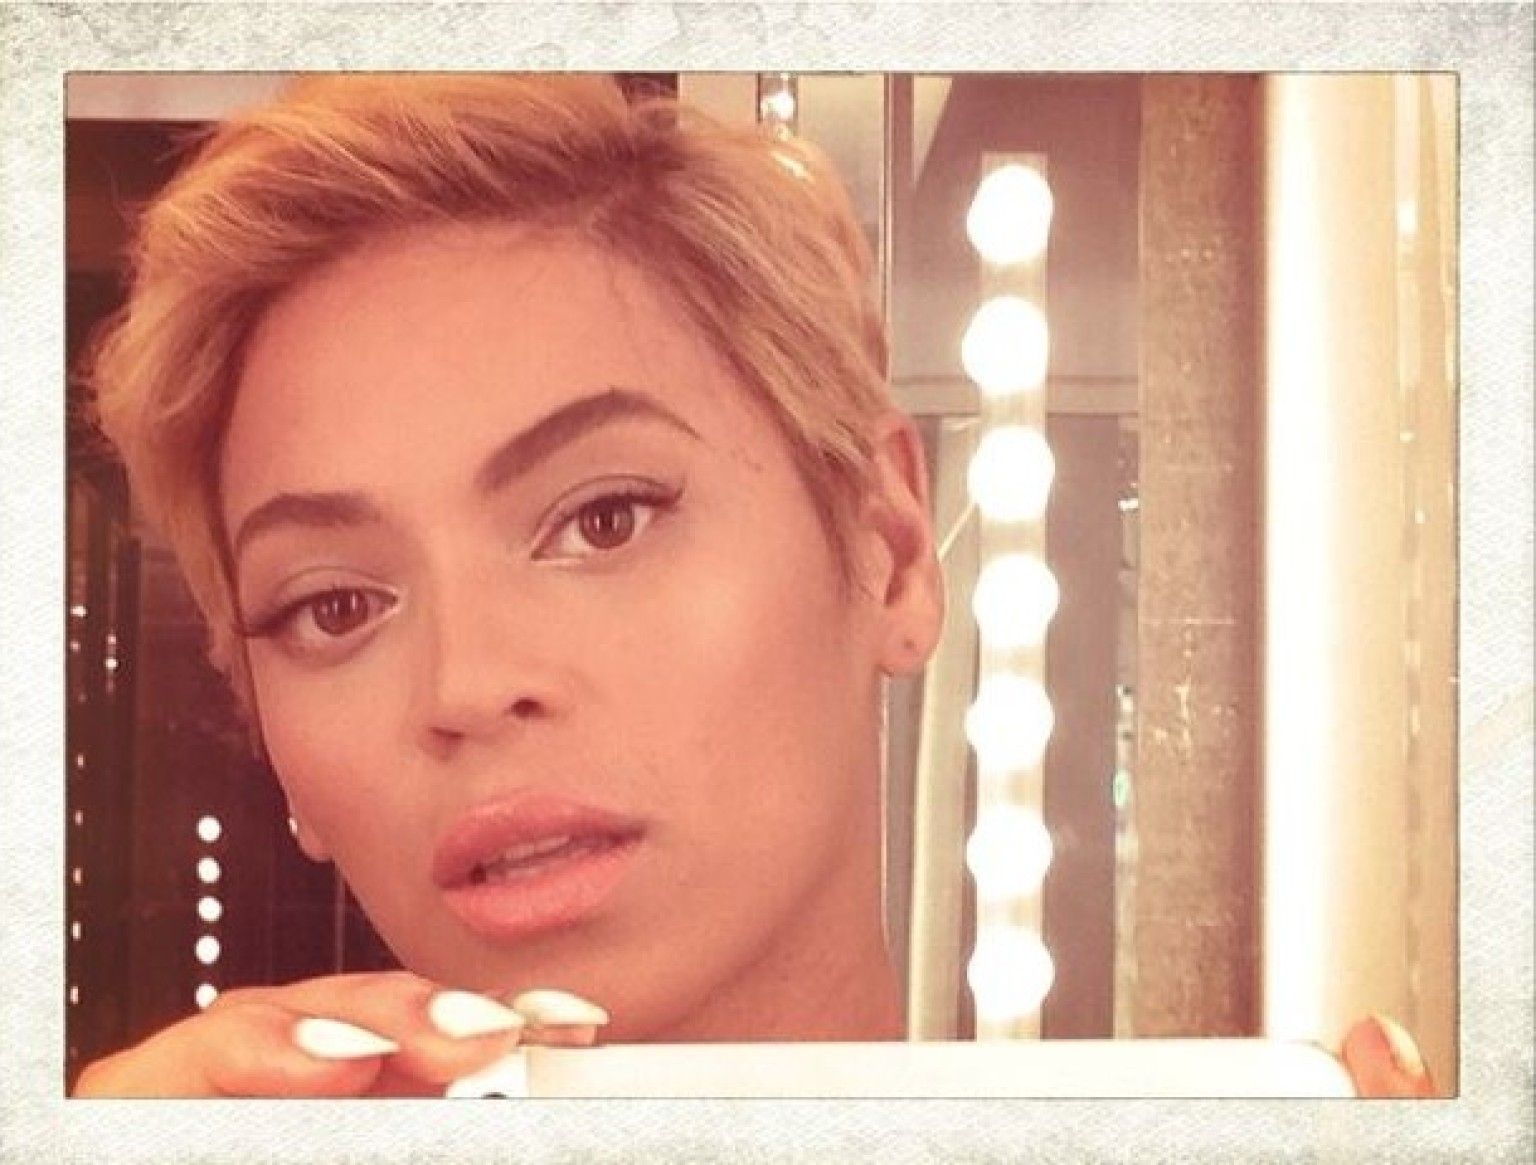 BEYONCE-CHEVEUX-COURTS-facebook.jpg